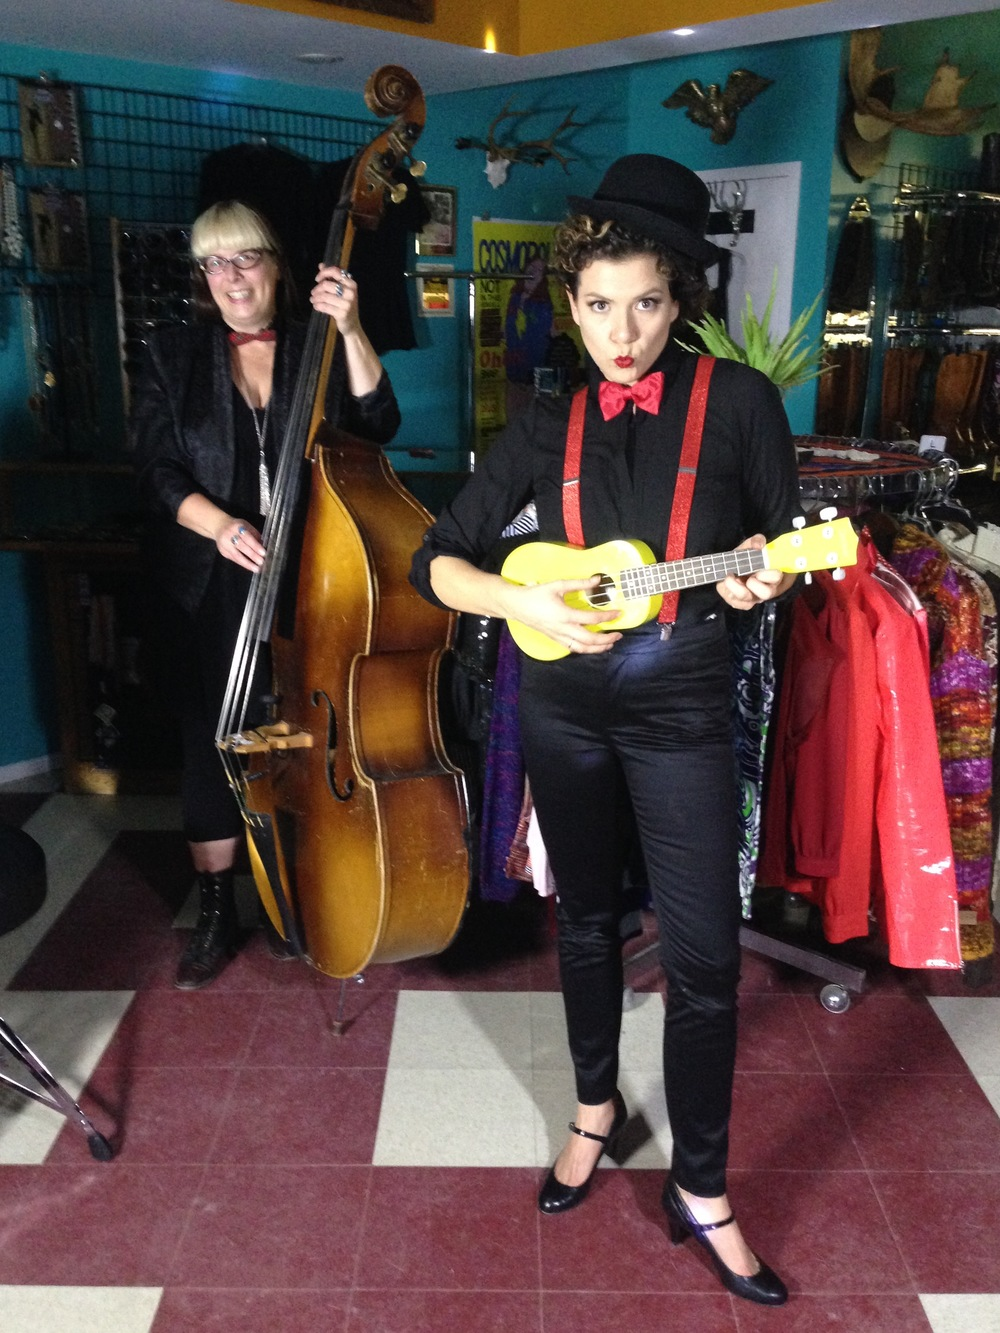 Better Off Duds shop owner, Nicola joined in for a few cameos on the shoot!